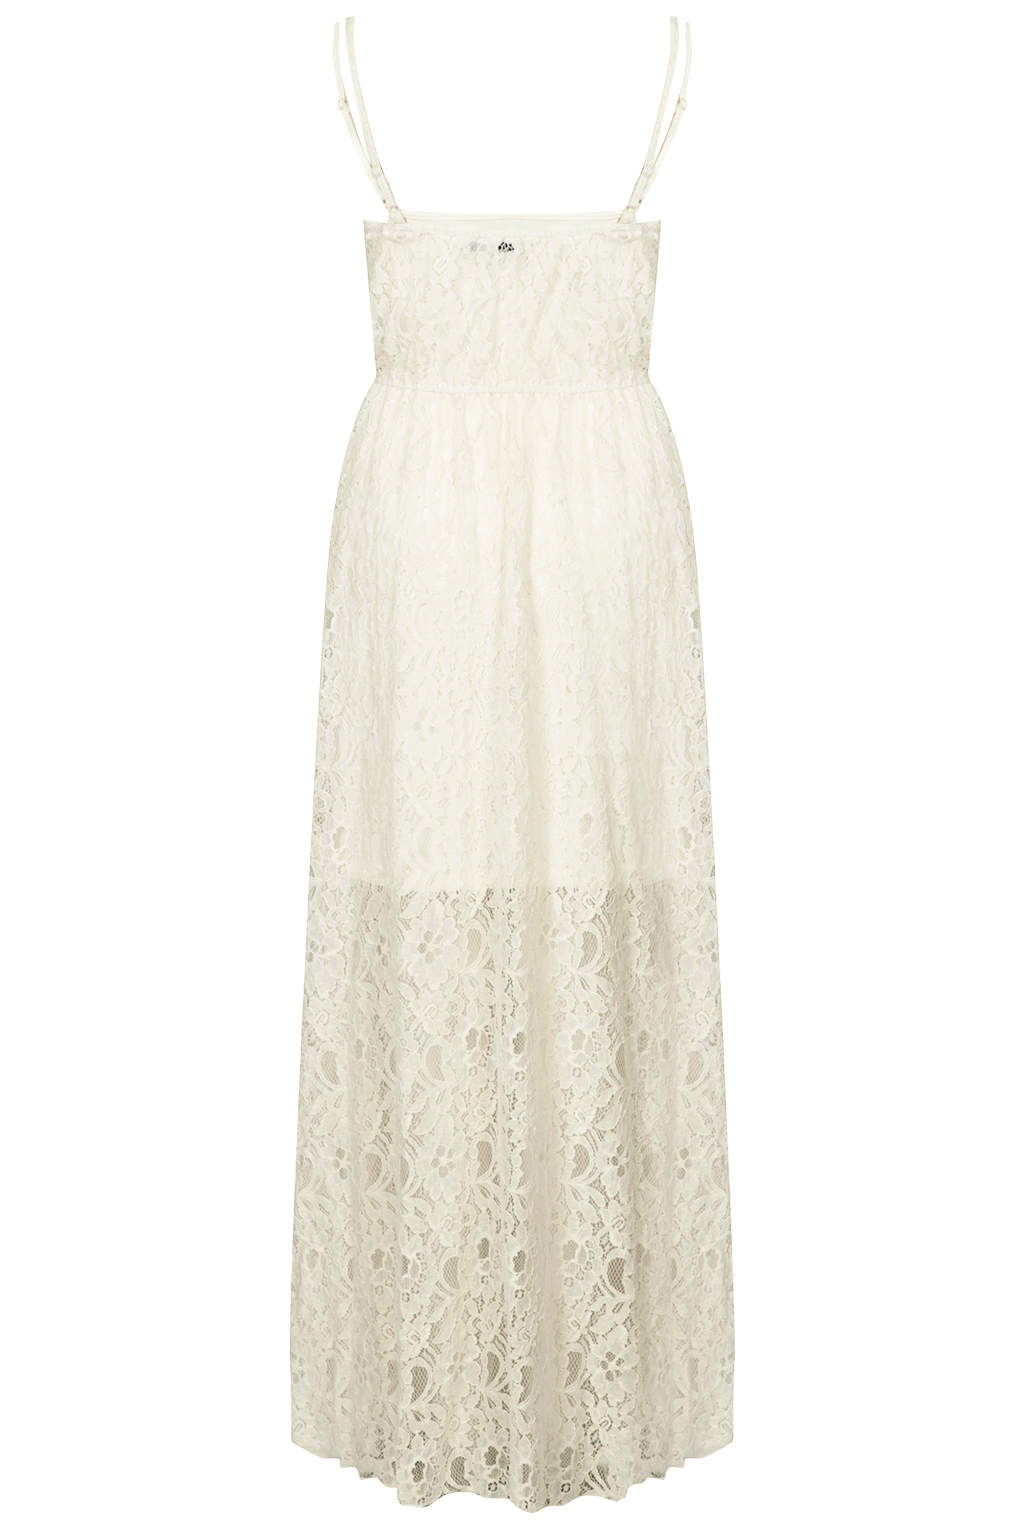 Topshop Cream Lace Button Front Maxi Dress By Rare In